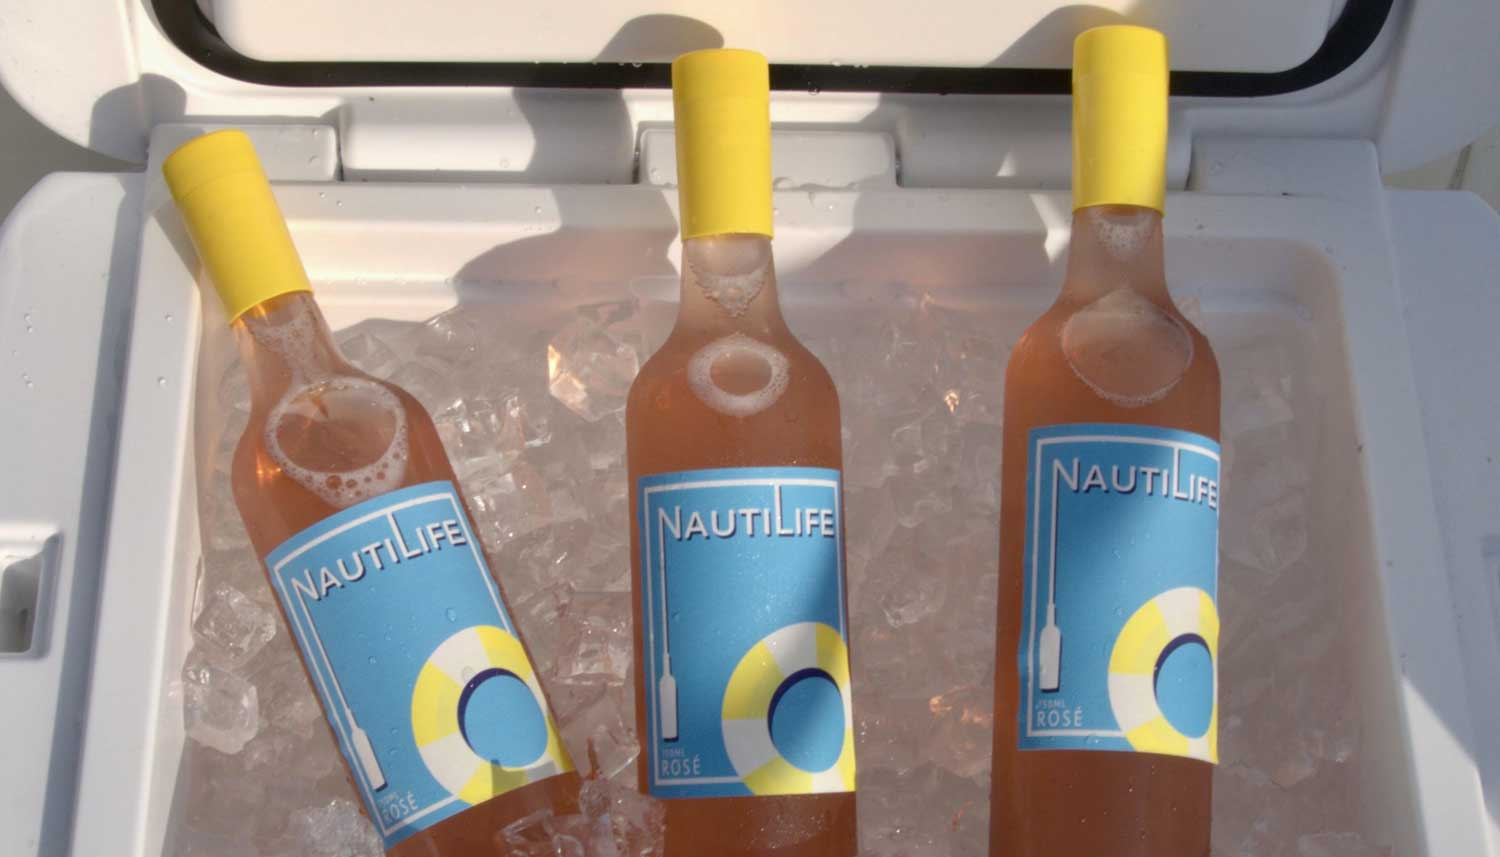 nautilife-bottle-cooler